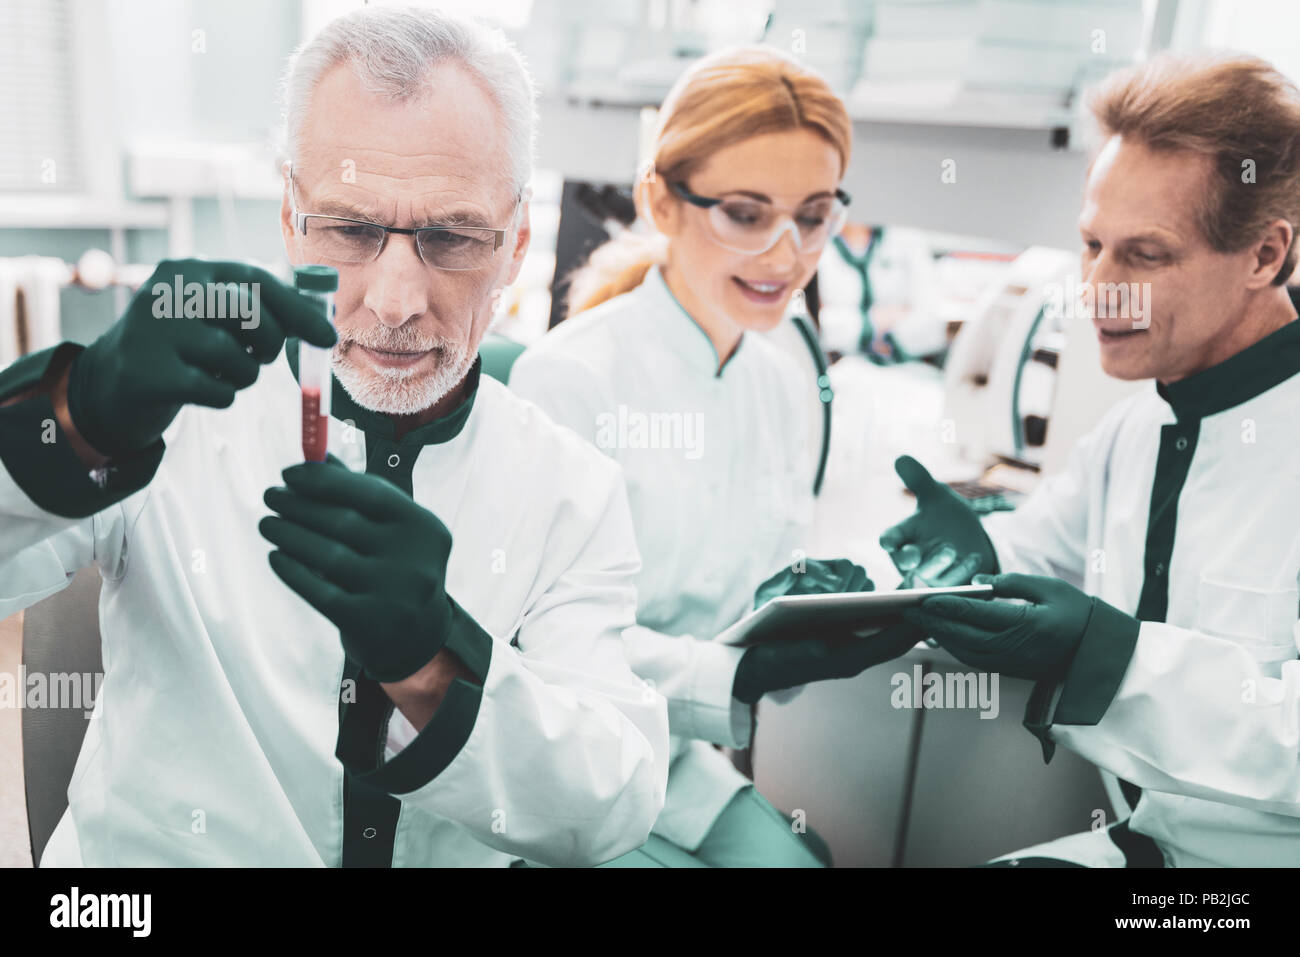 Three scientific researchers in green gloves - Stock Image